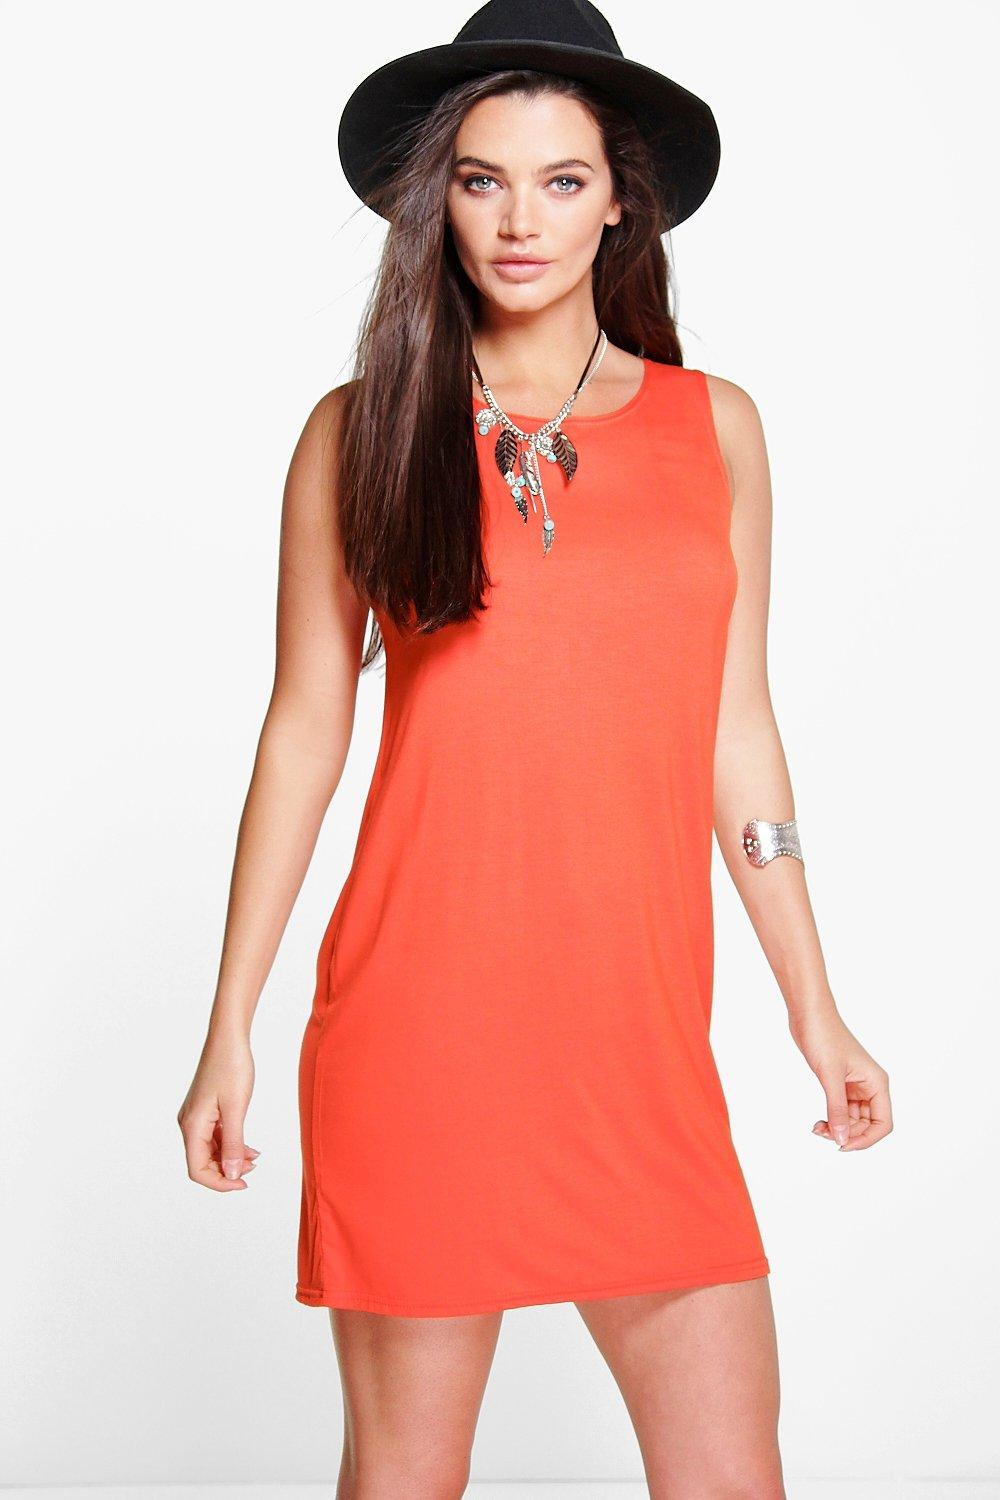 Dory Basic Crew Neck Sleeveless Shift Dress